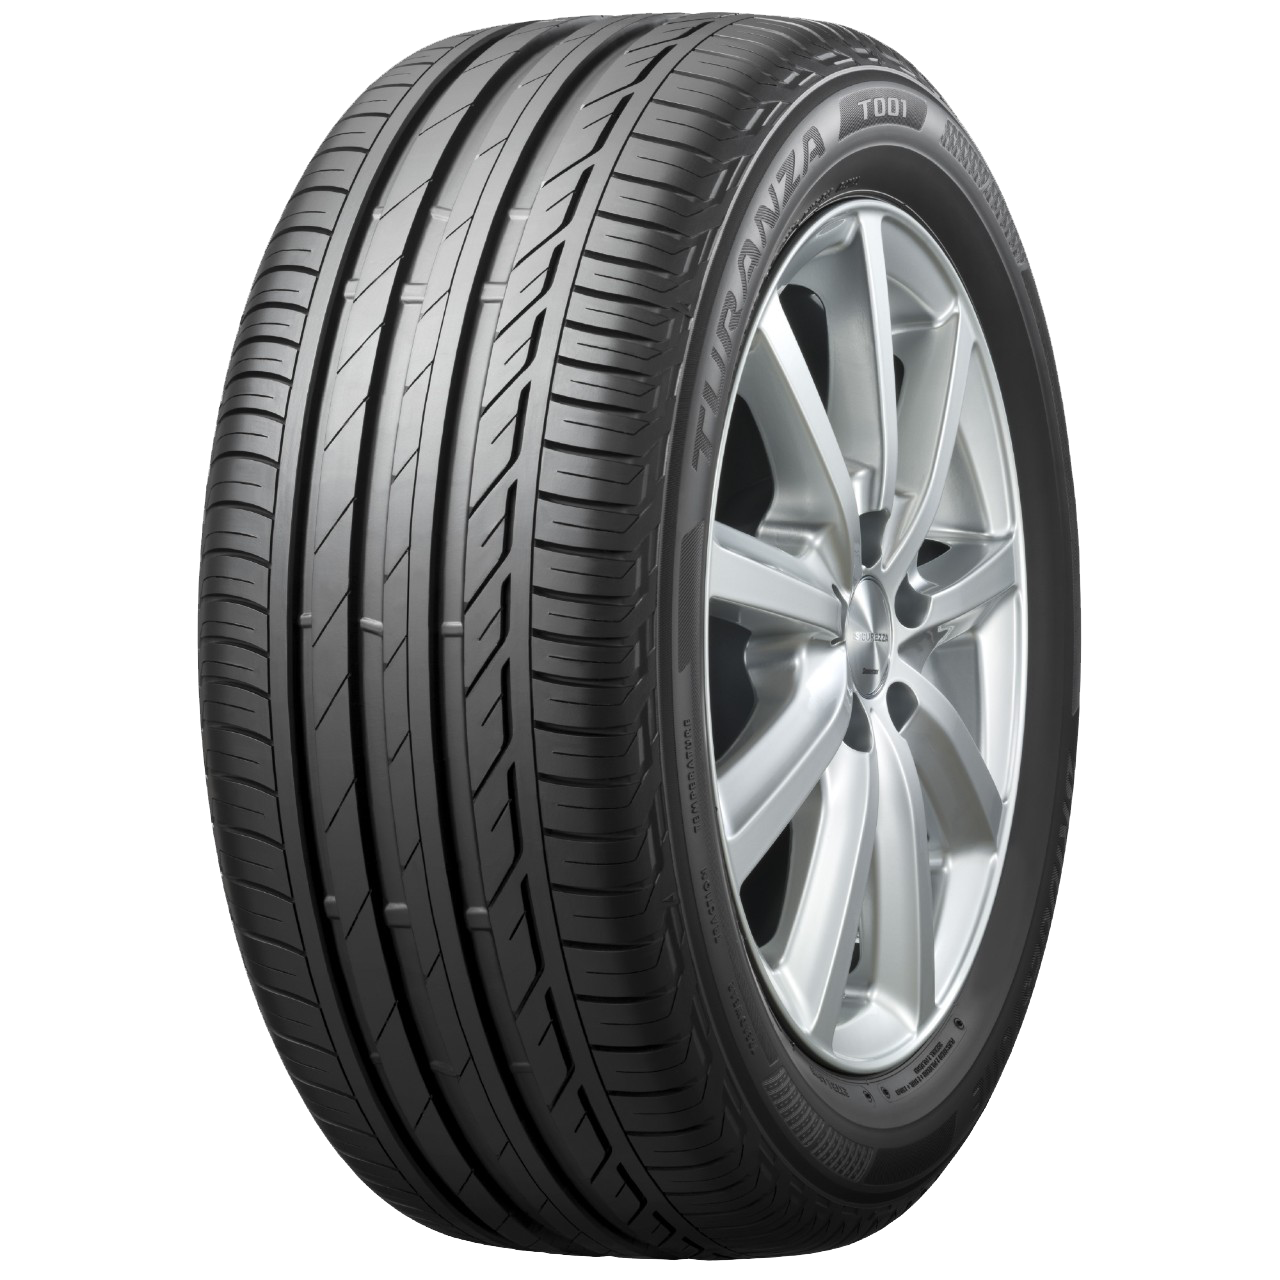 Bridgestone TURANZA T001 Run-Flat Technology